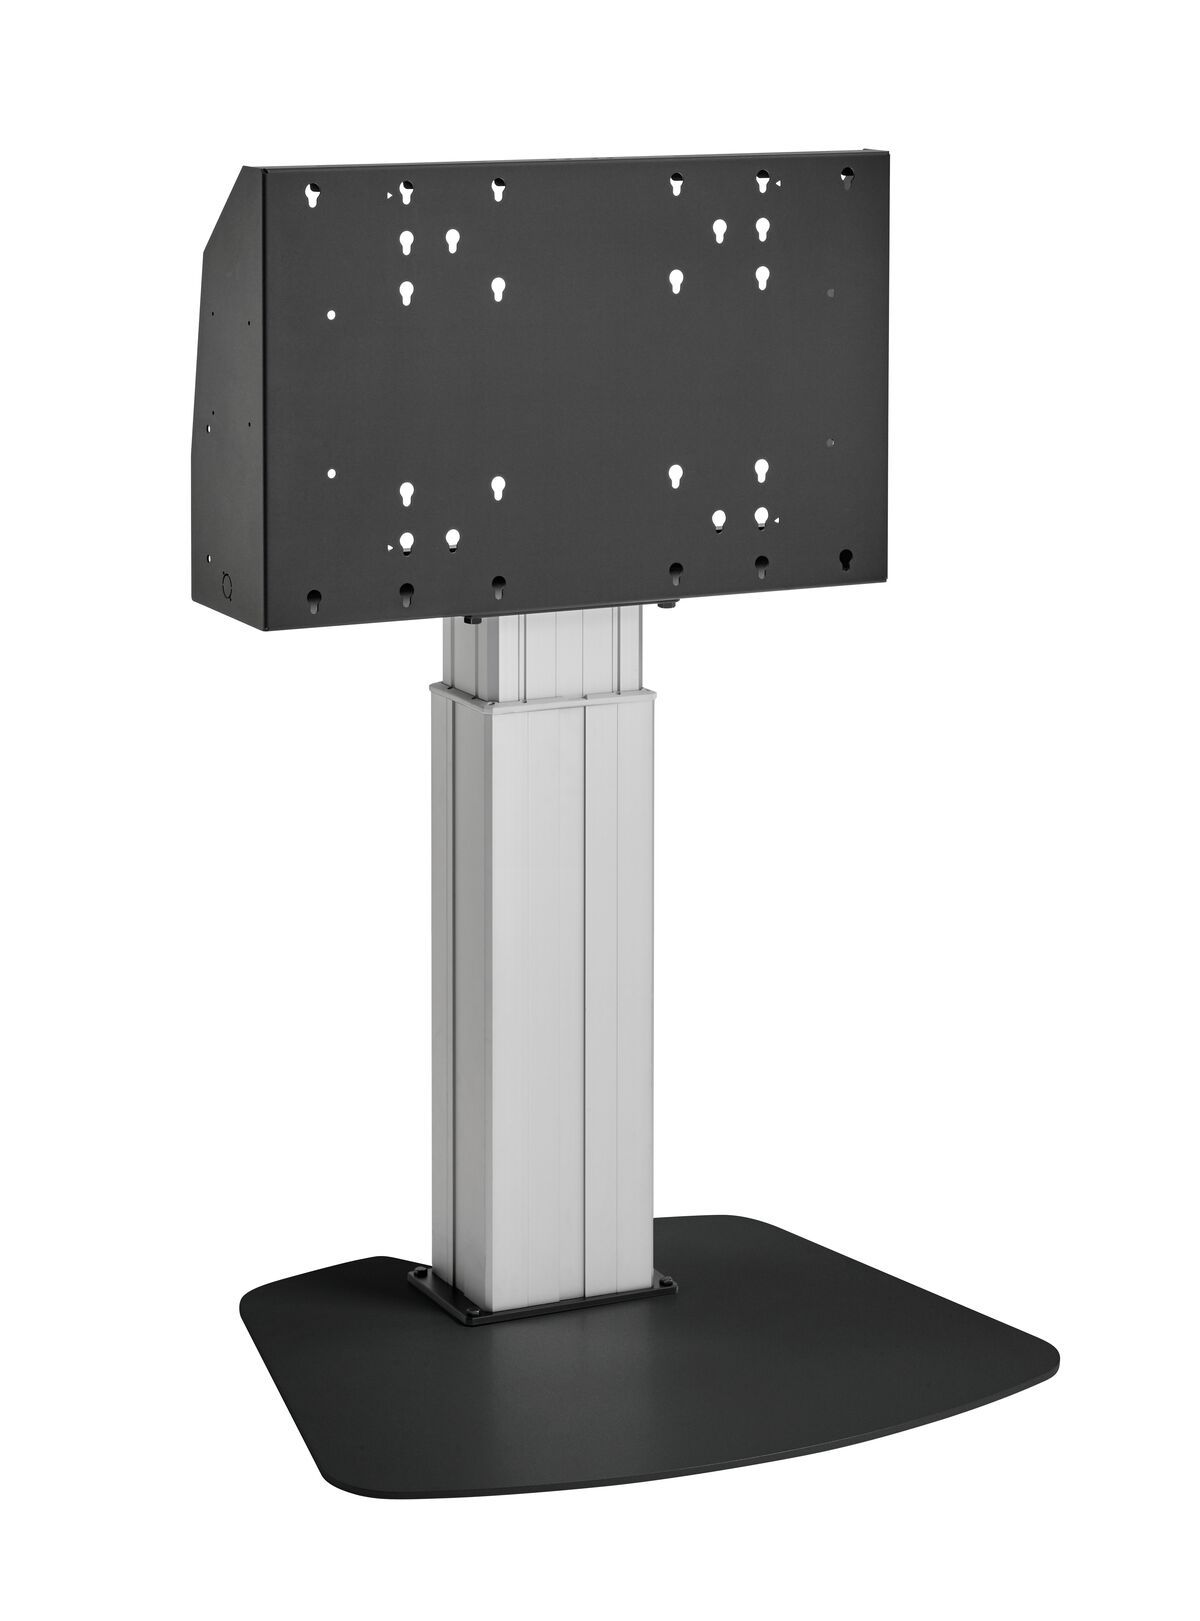 Vogel's FE6064B Motorized floor stand 60 cm - Product